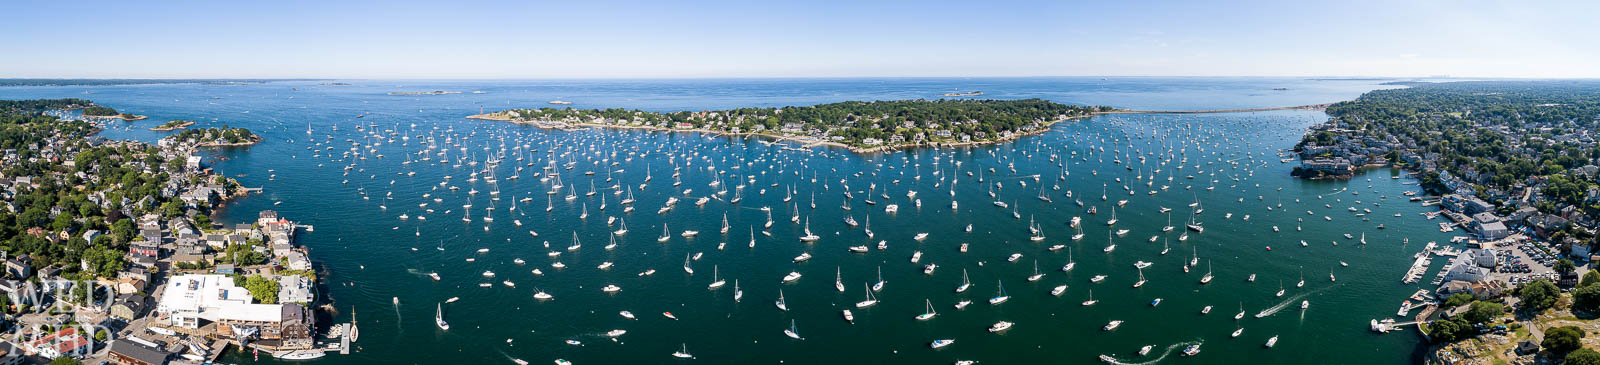 A full harbor is captured in this aerial panorama taking in the whole of Marblehead Neck on the Fourth of July